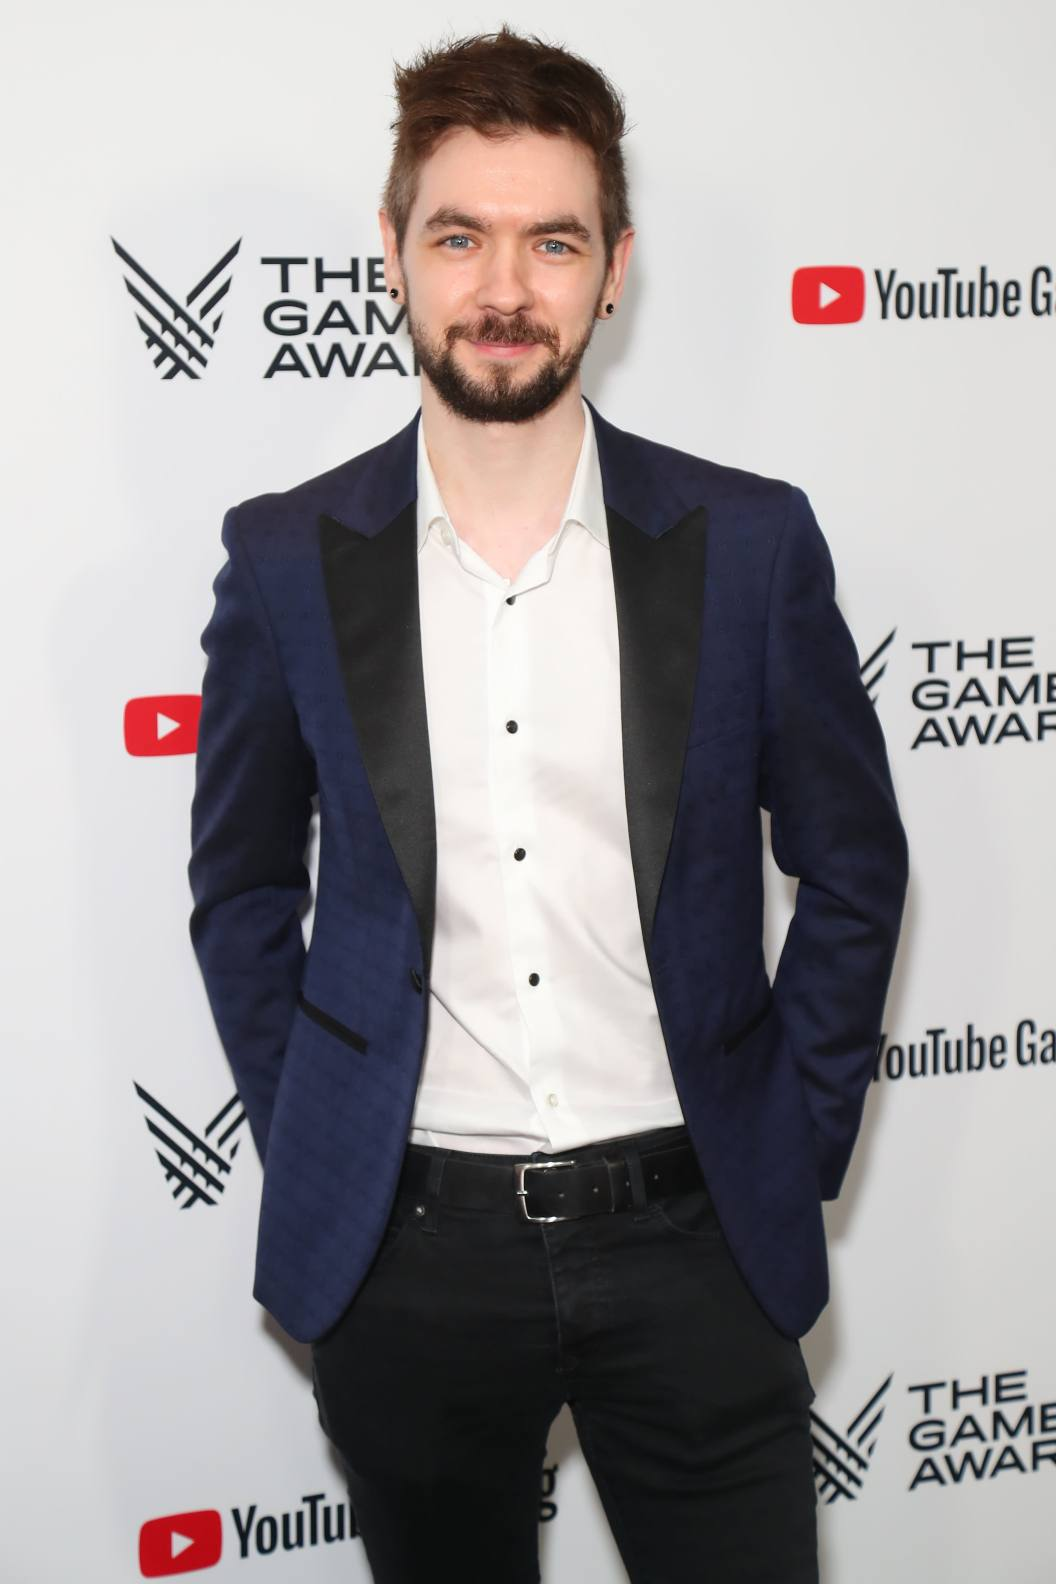 GS: Jacksepticeye blogger de YouTube